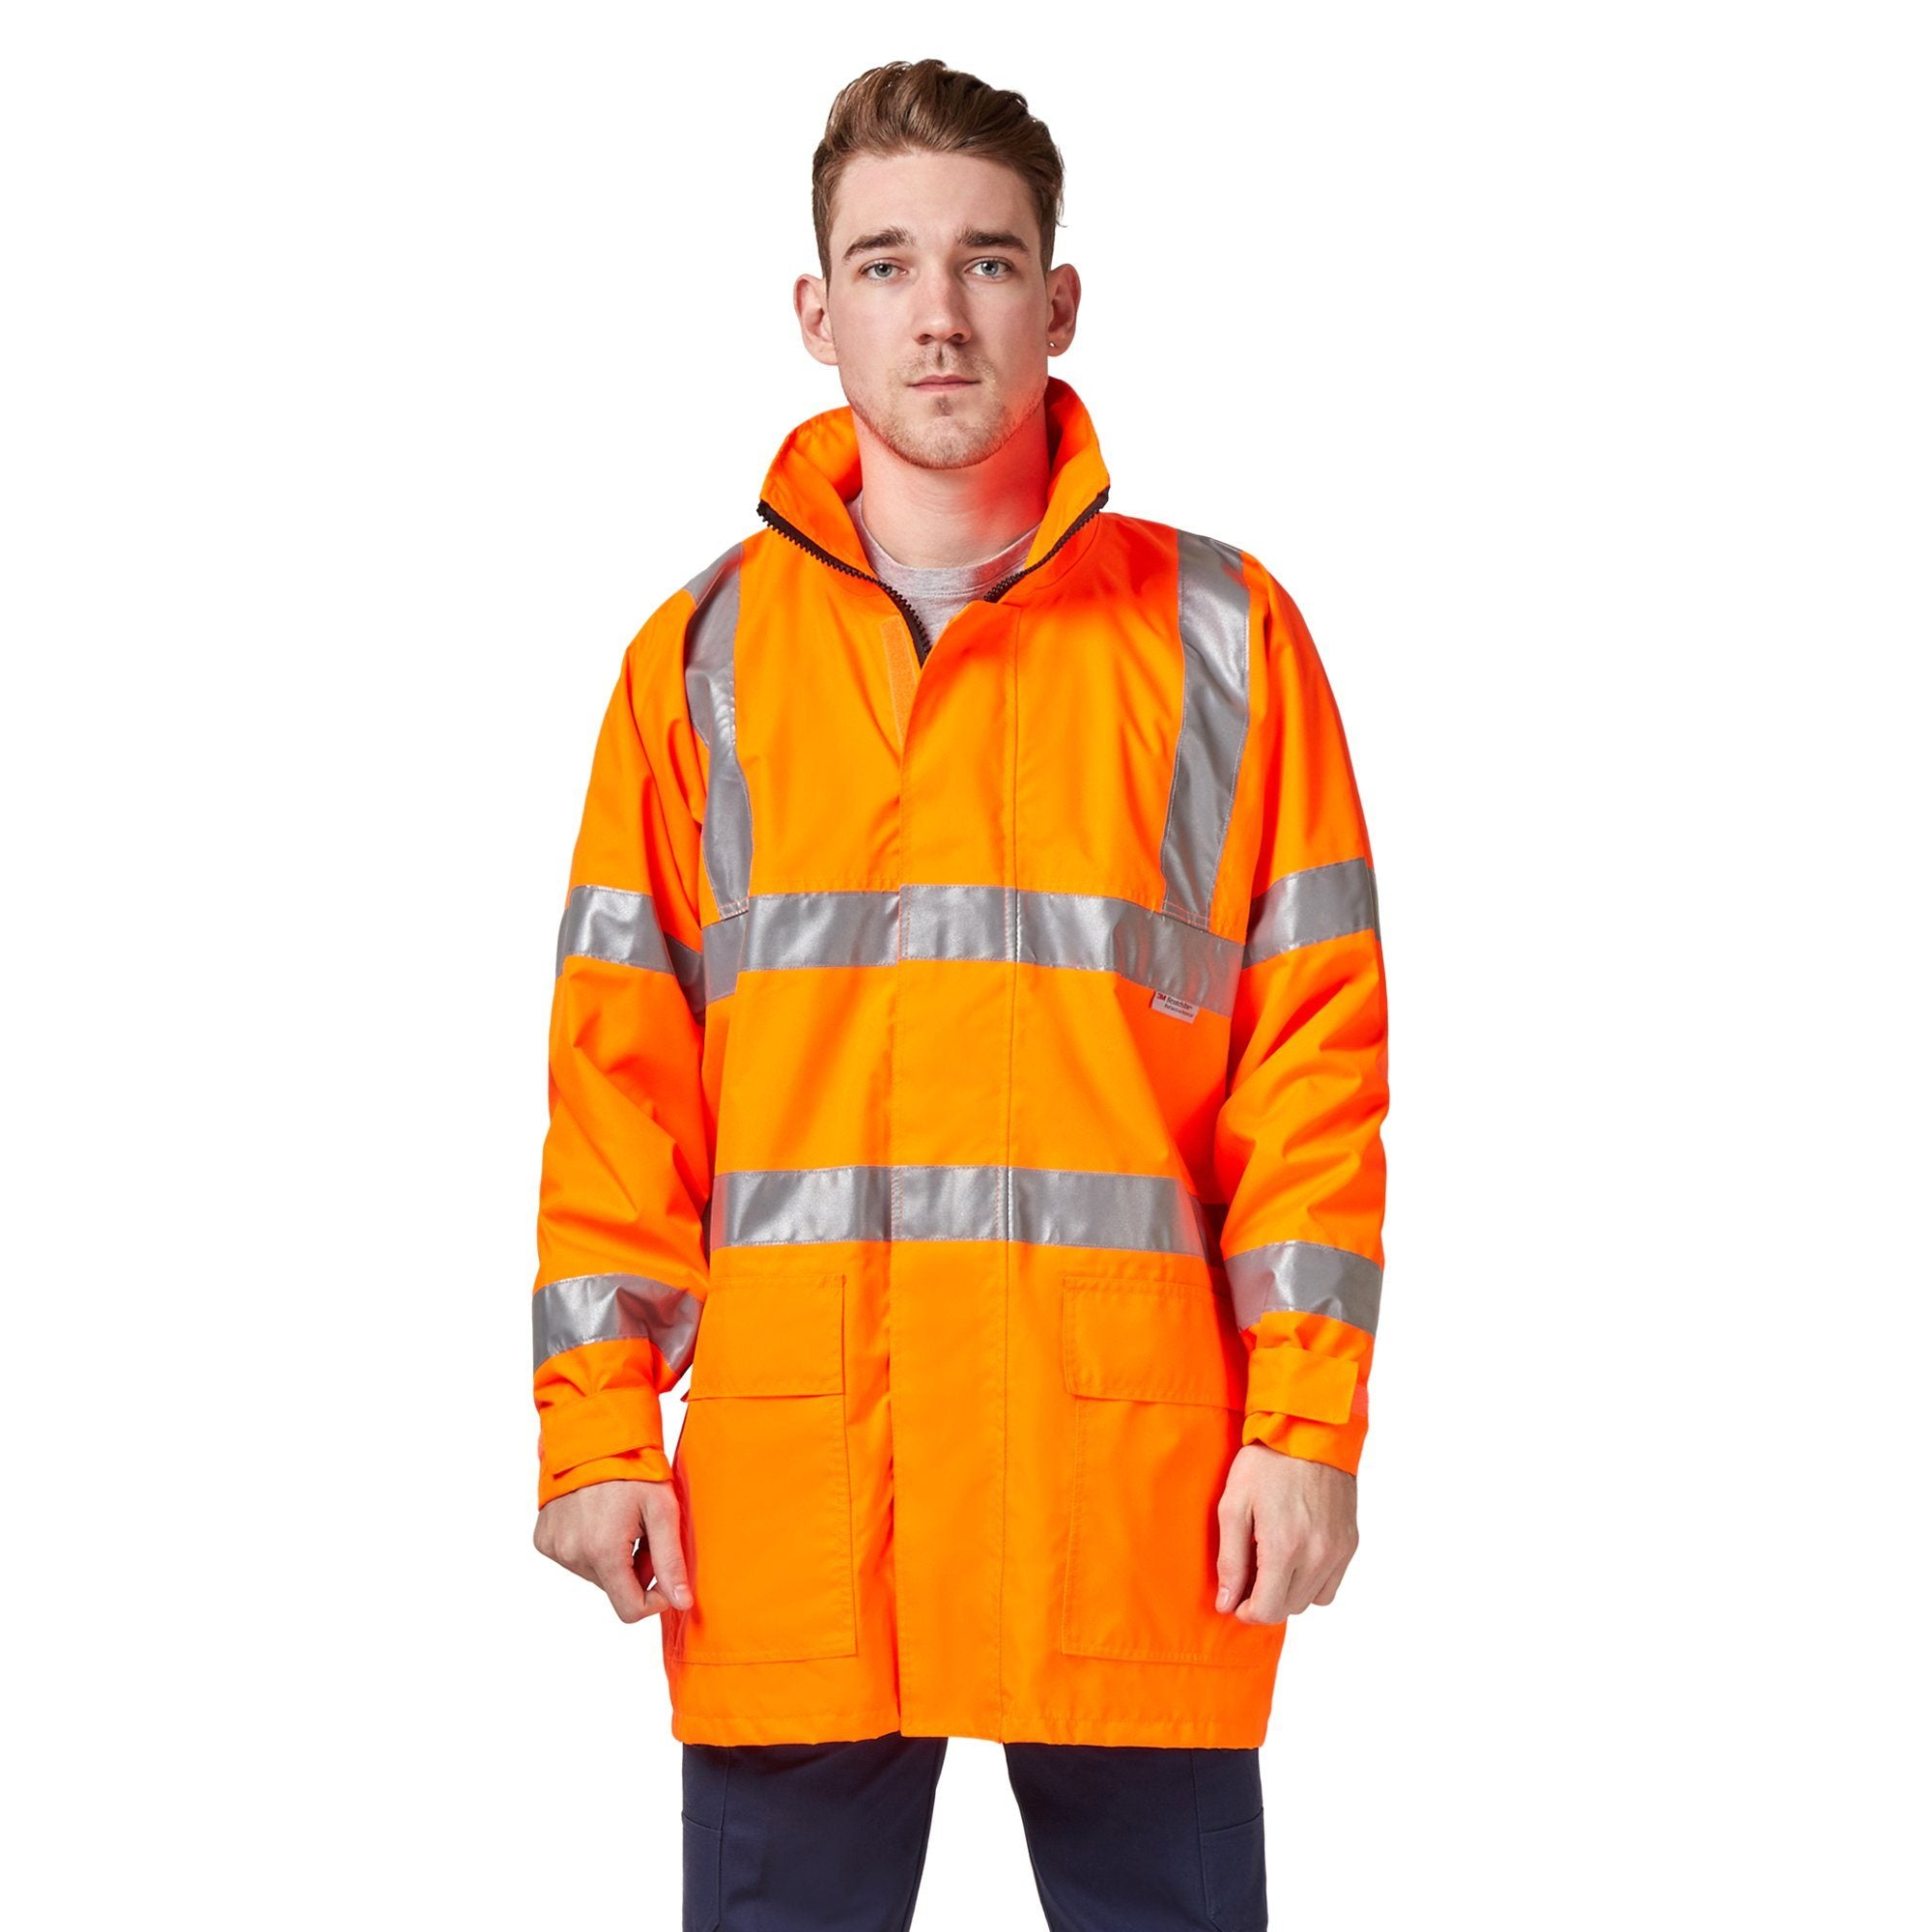 Hard Yakka High Vis Jacket with Reflective Tape Workwear Isbister & Co Wholesale